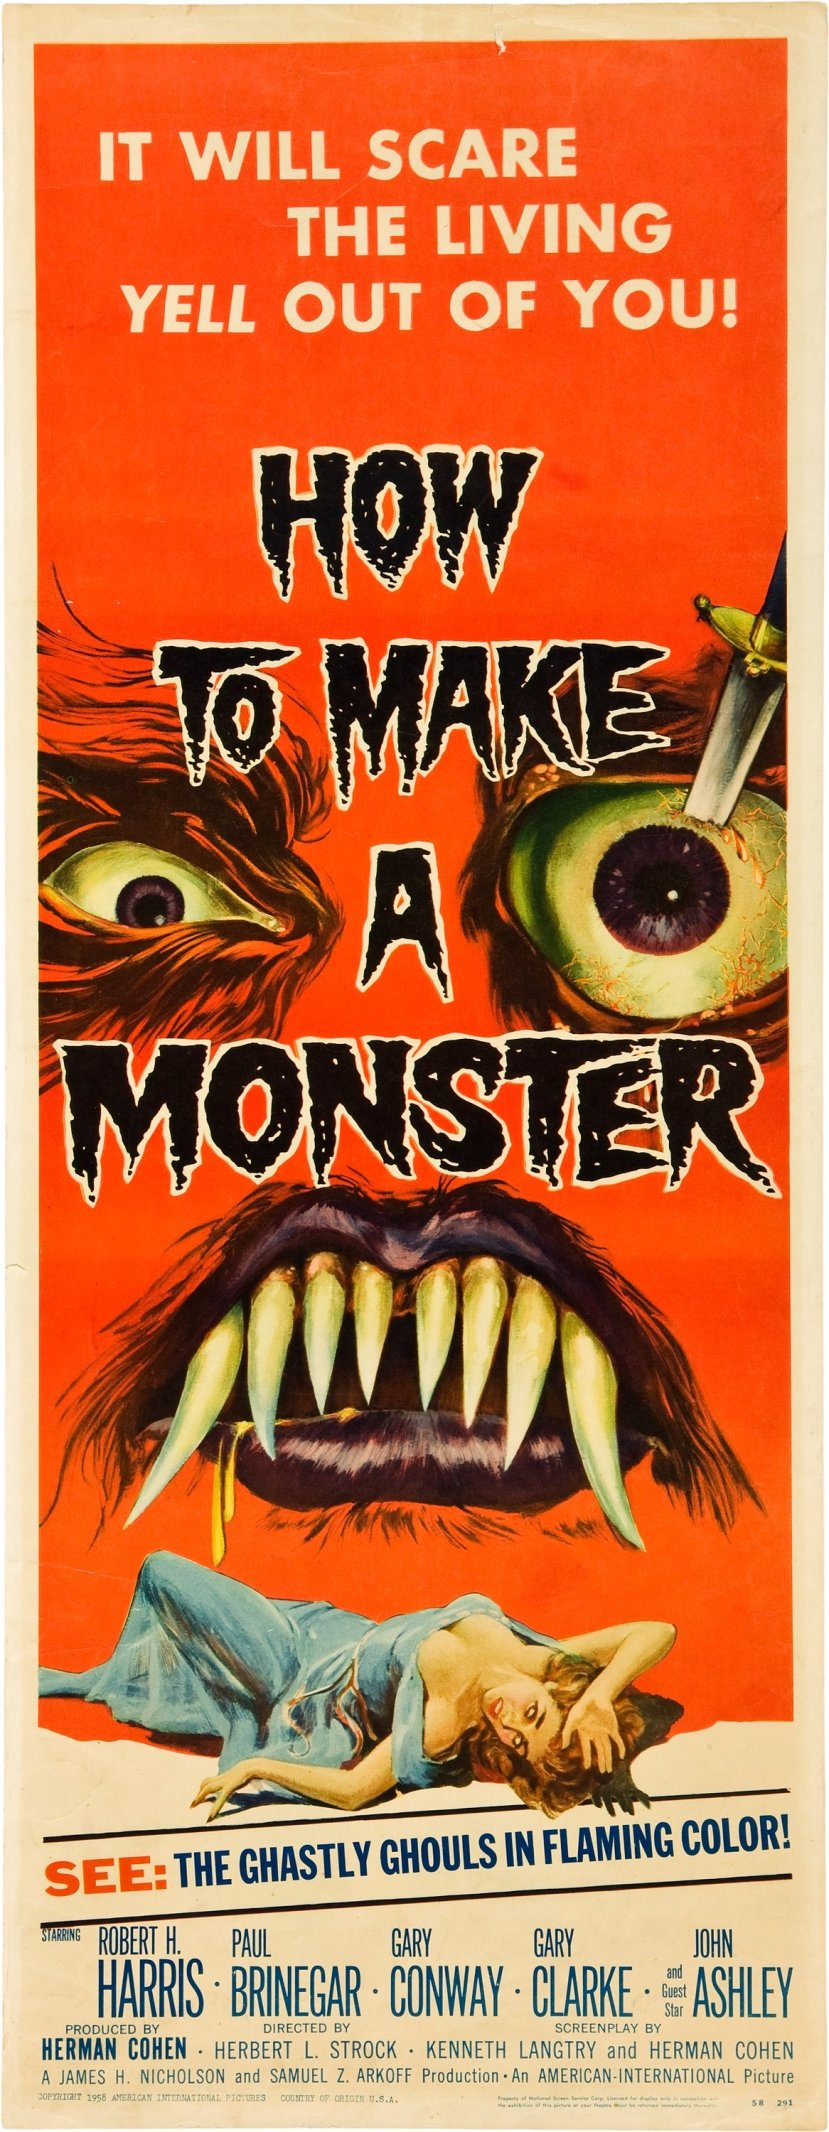 how-to-make-a-monster-4